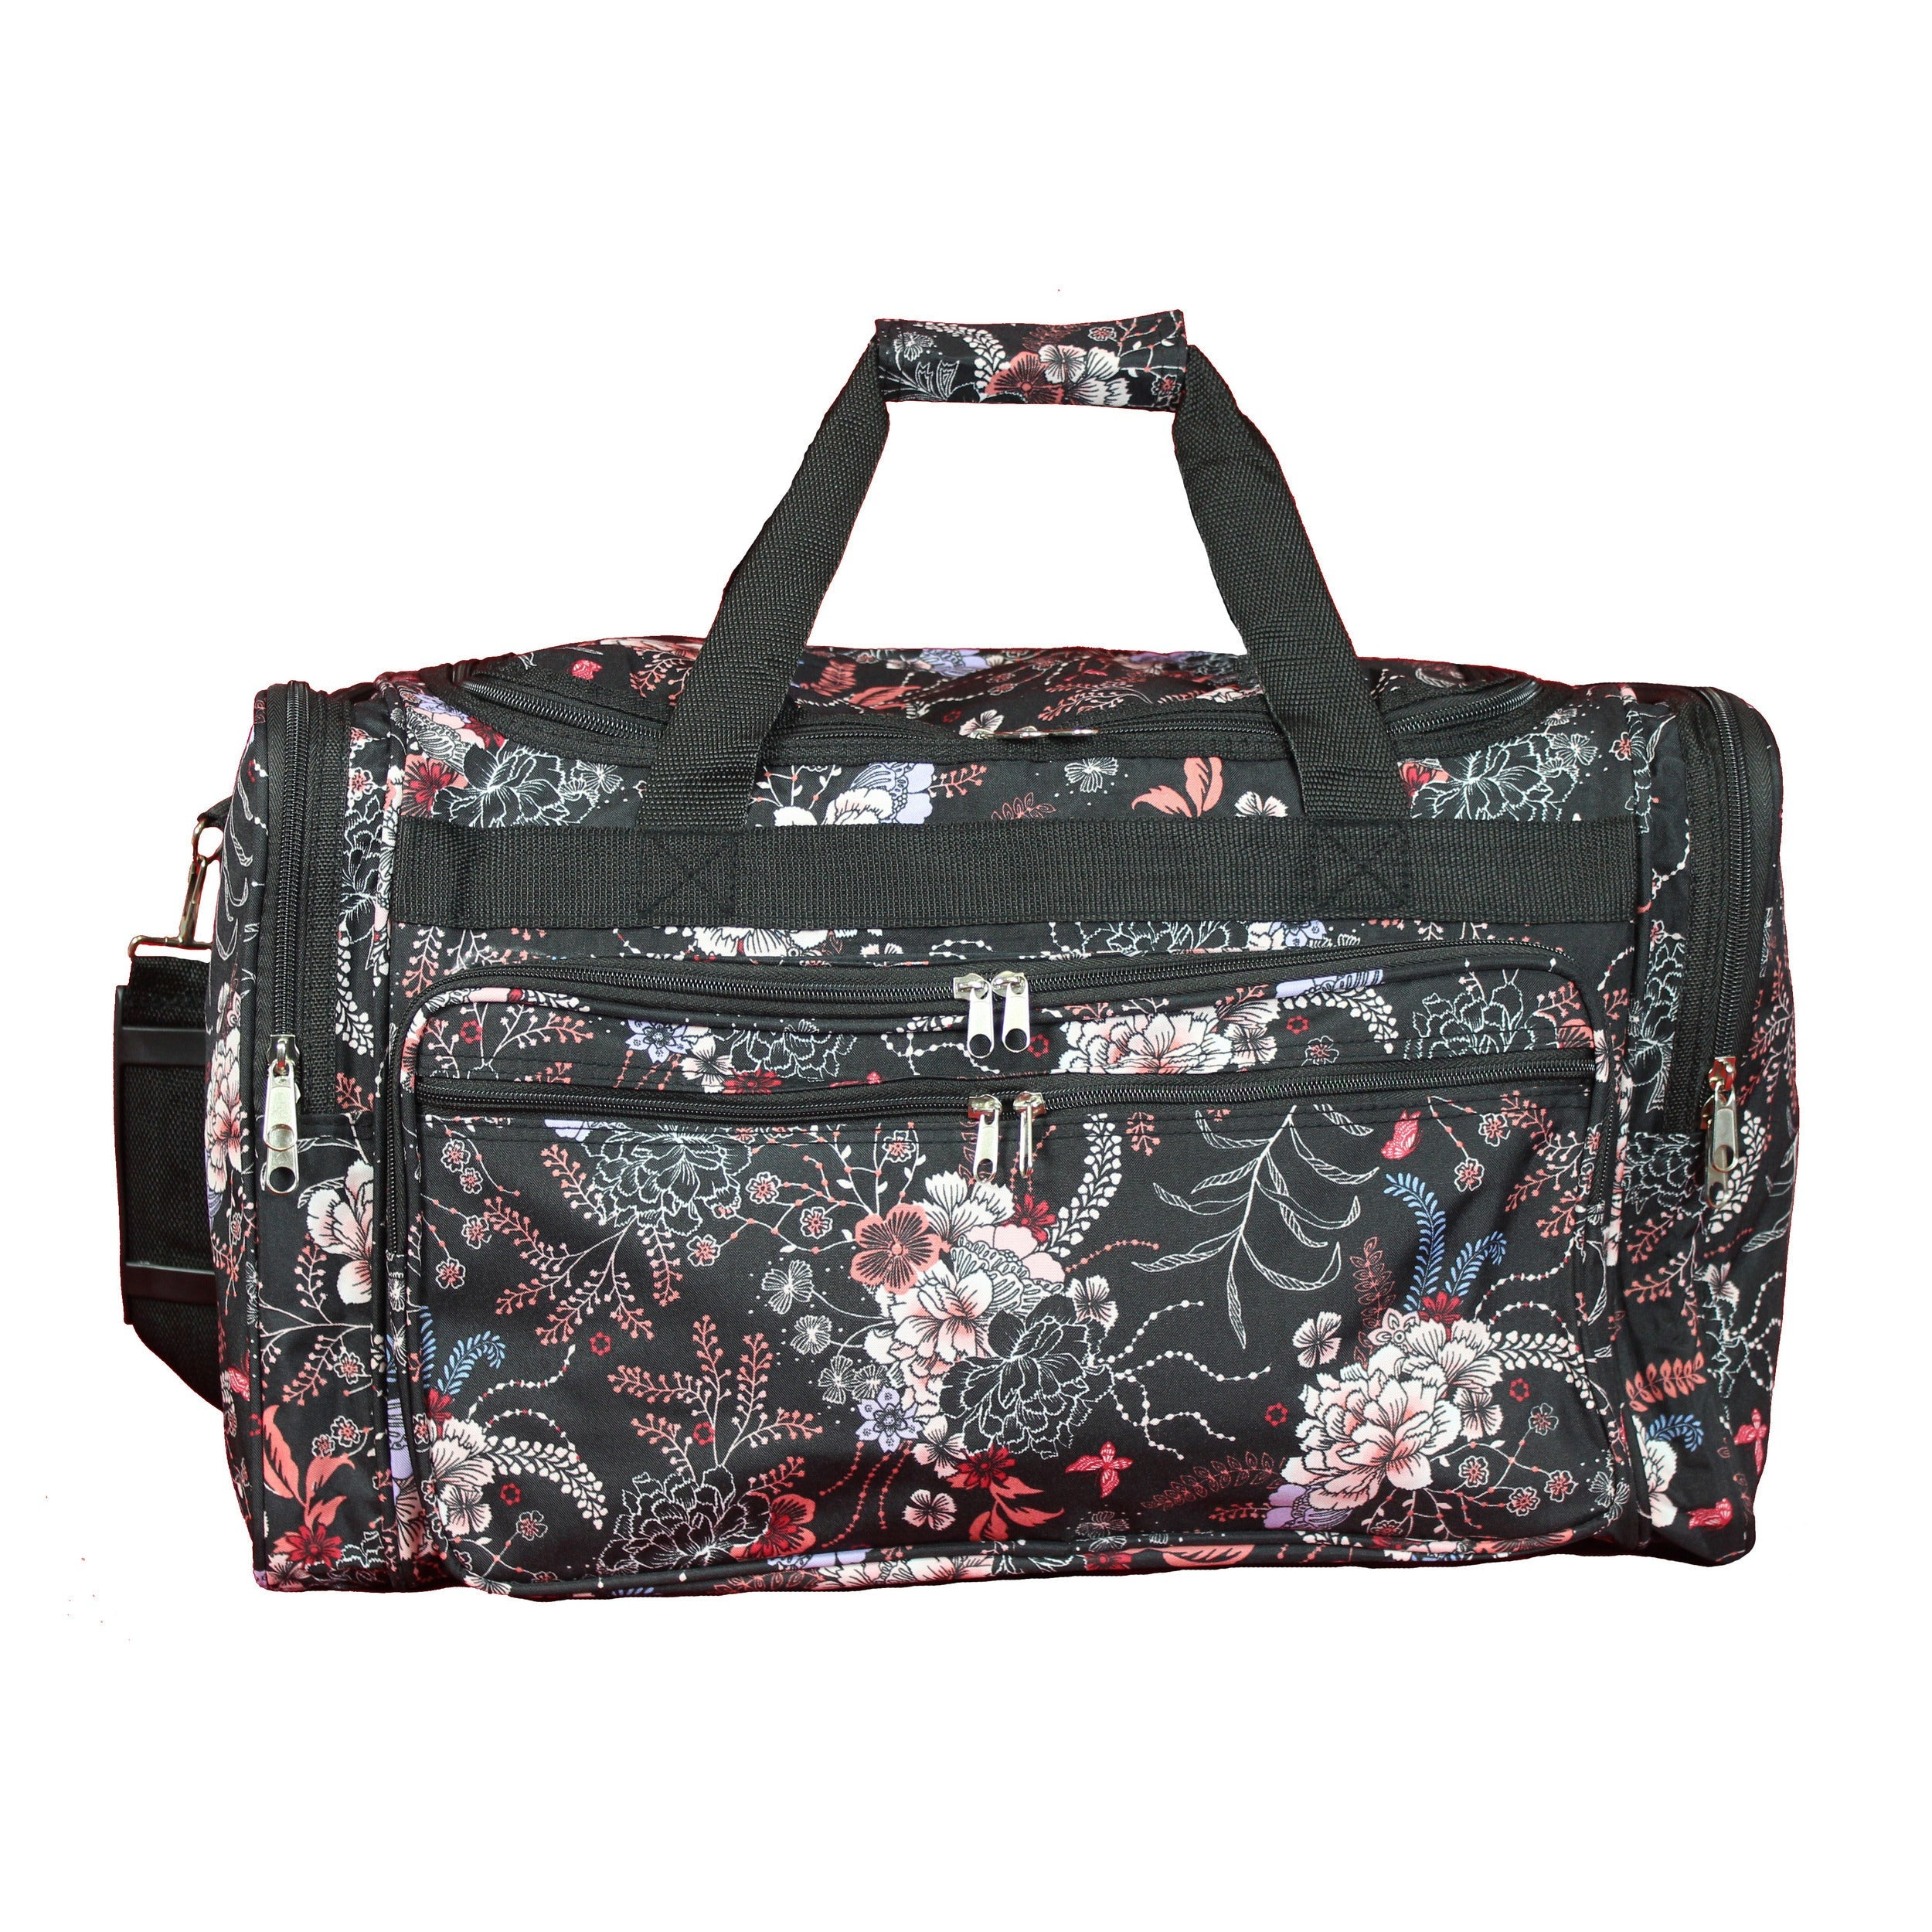 Flower 22-inch Lightweight Duffle Bag Multi Color Floral Polyester Checkpoint-friendly Multi-compartment Adjustable Strap Lined - Diamond Home USA